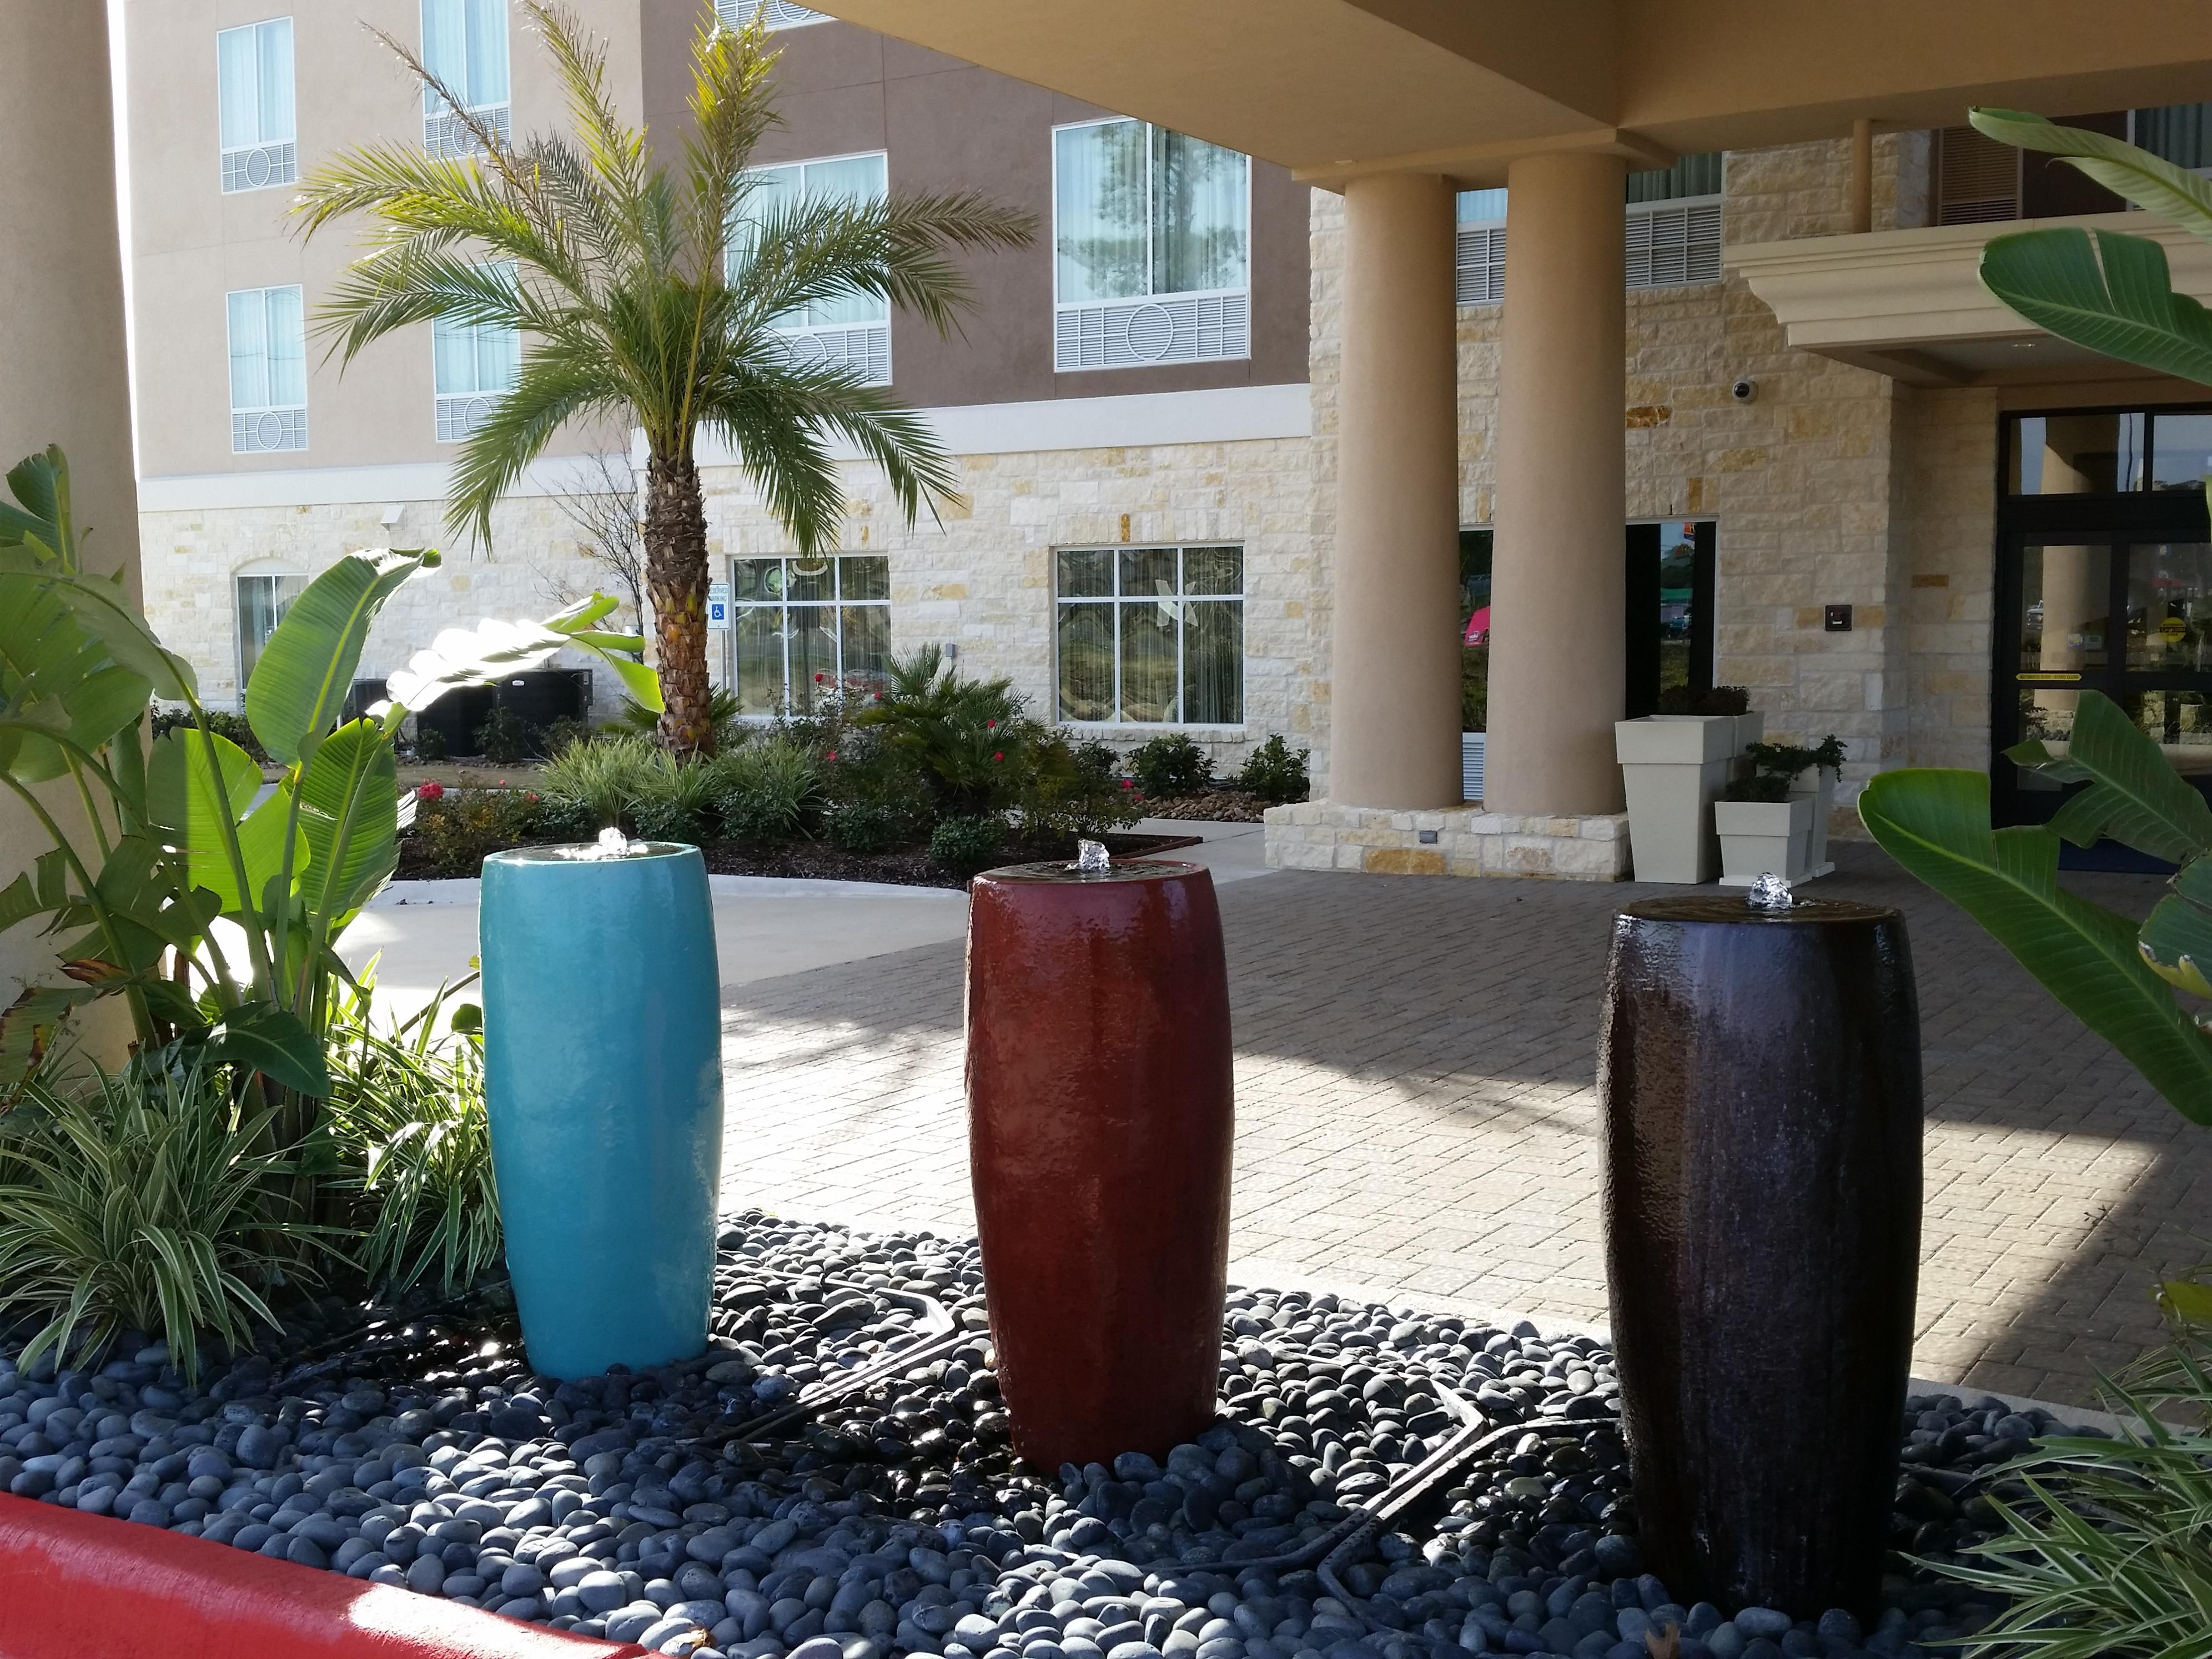 Bubbling Fountains at Hotel Entrance